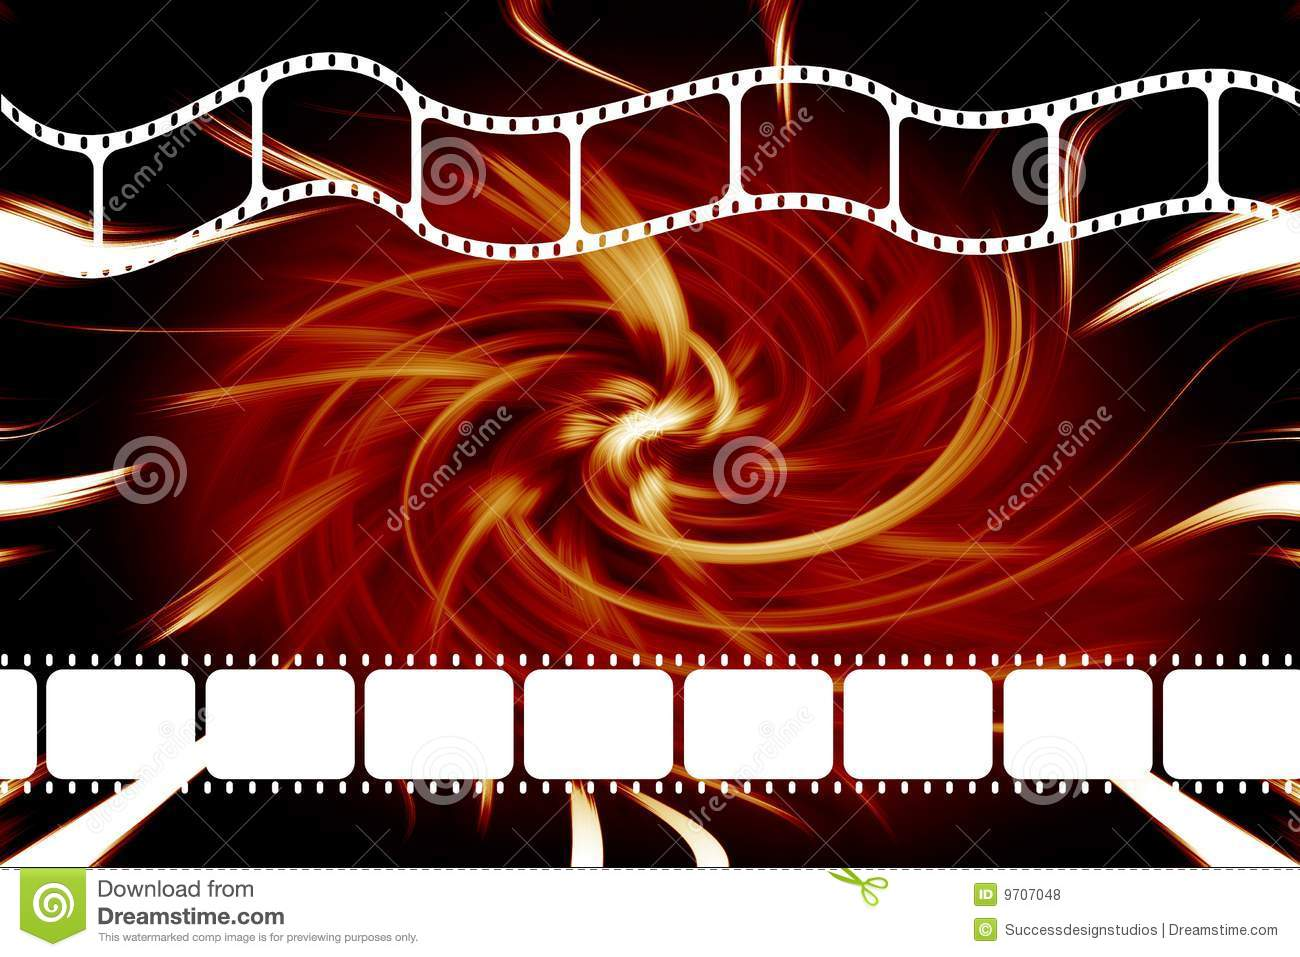 modern theatre movie 35mm film dvd or reel strip over swirl red and ...